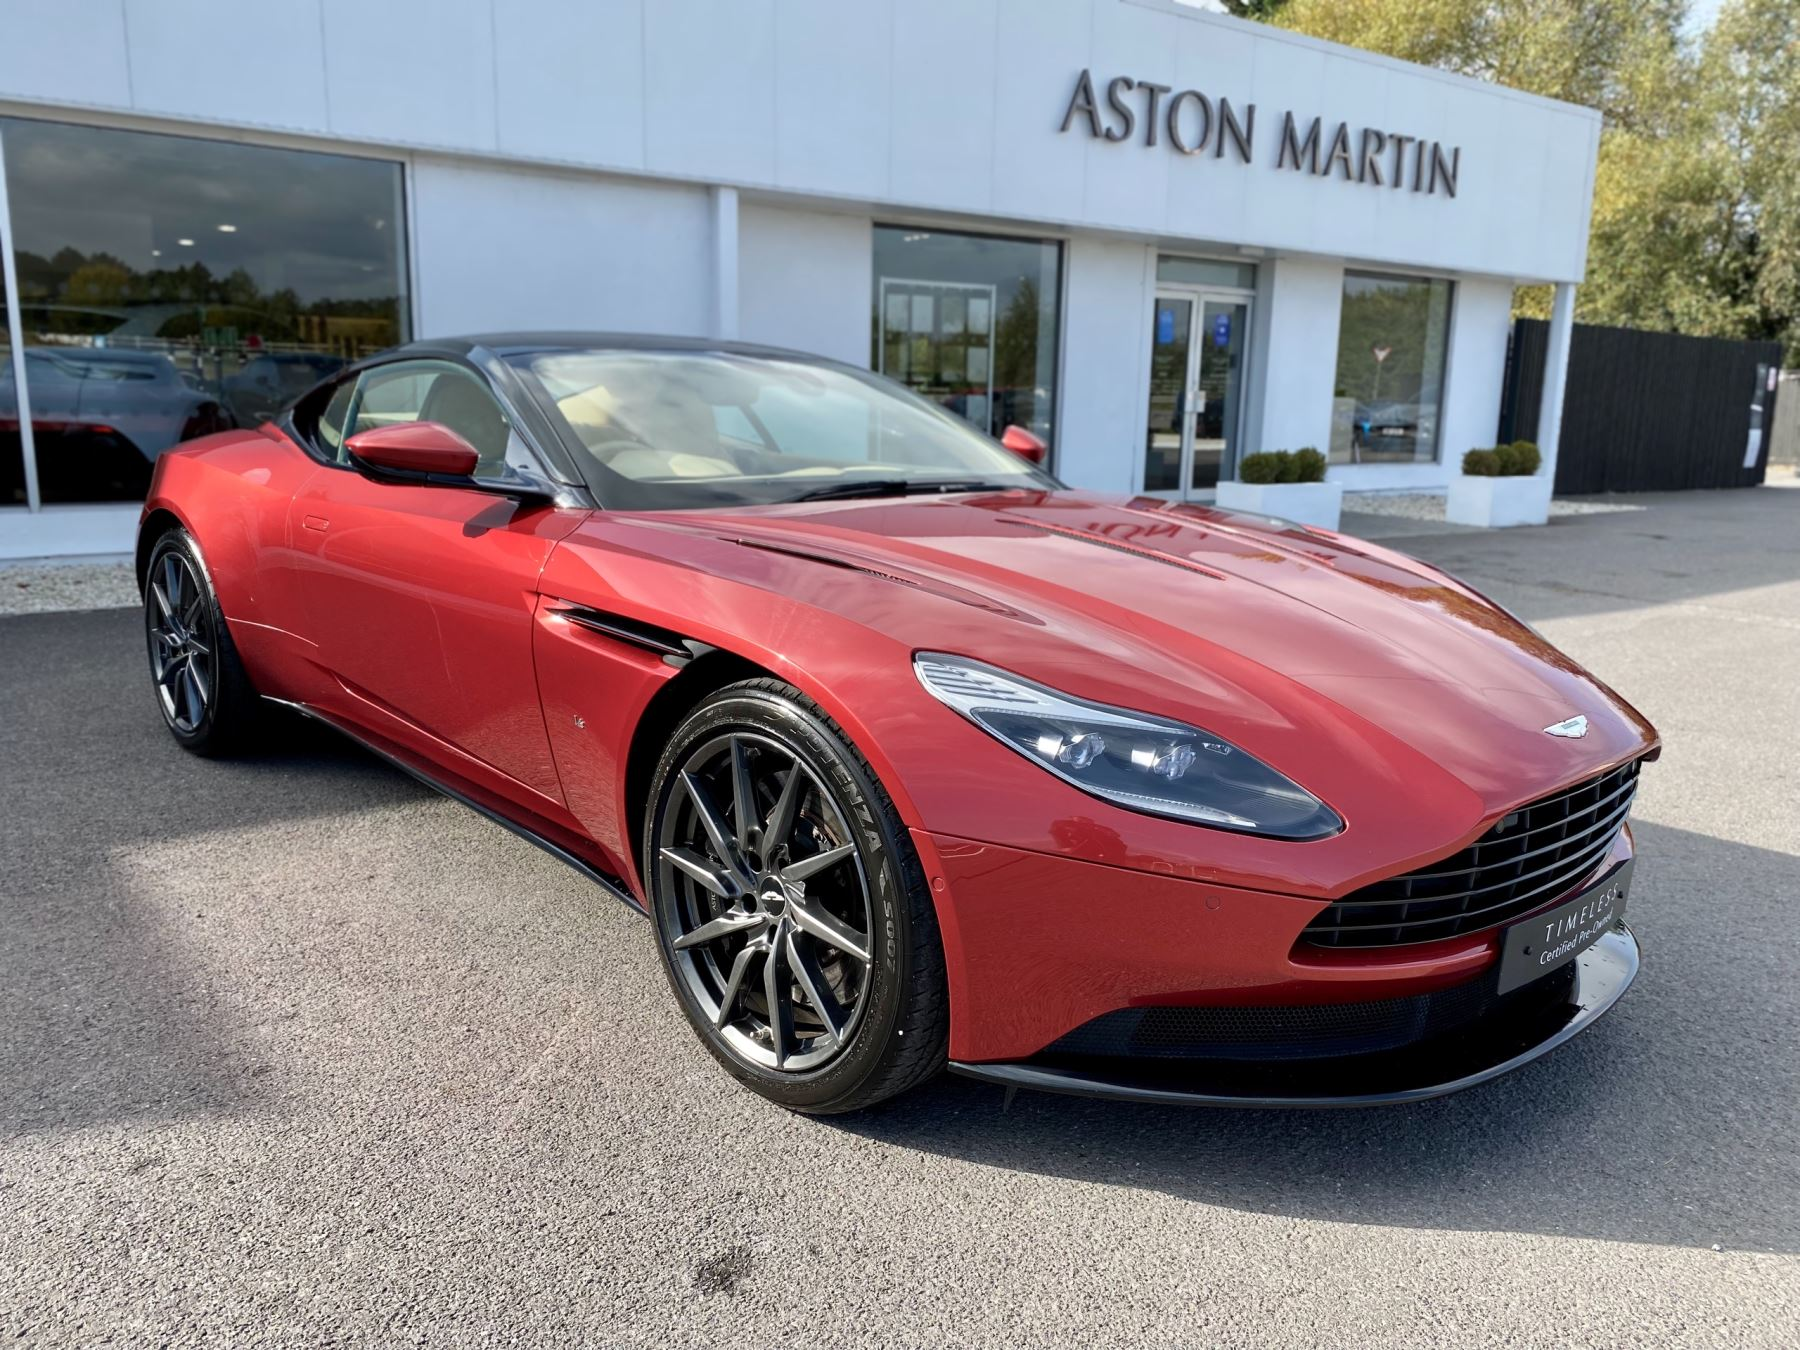 Aston Martin DB11 V12 Launch Edition Coupe. Bang & Olufsen Beosound Audio. Black brake calipers. Ventilated Seats 5.2 Automatic 2 door